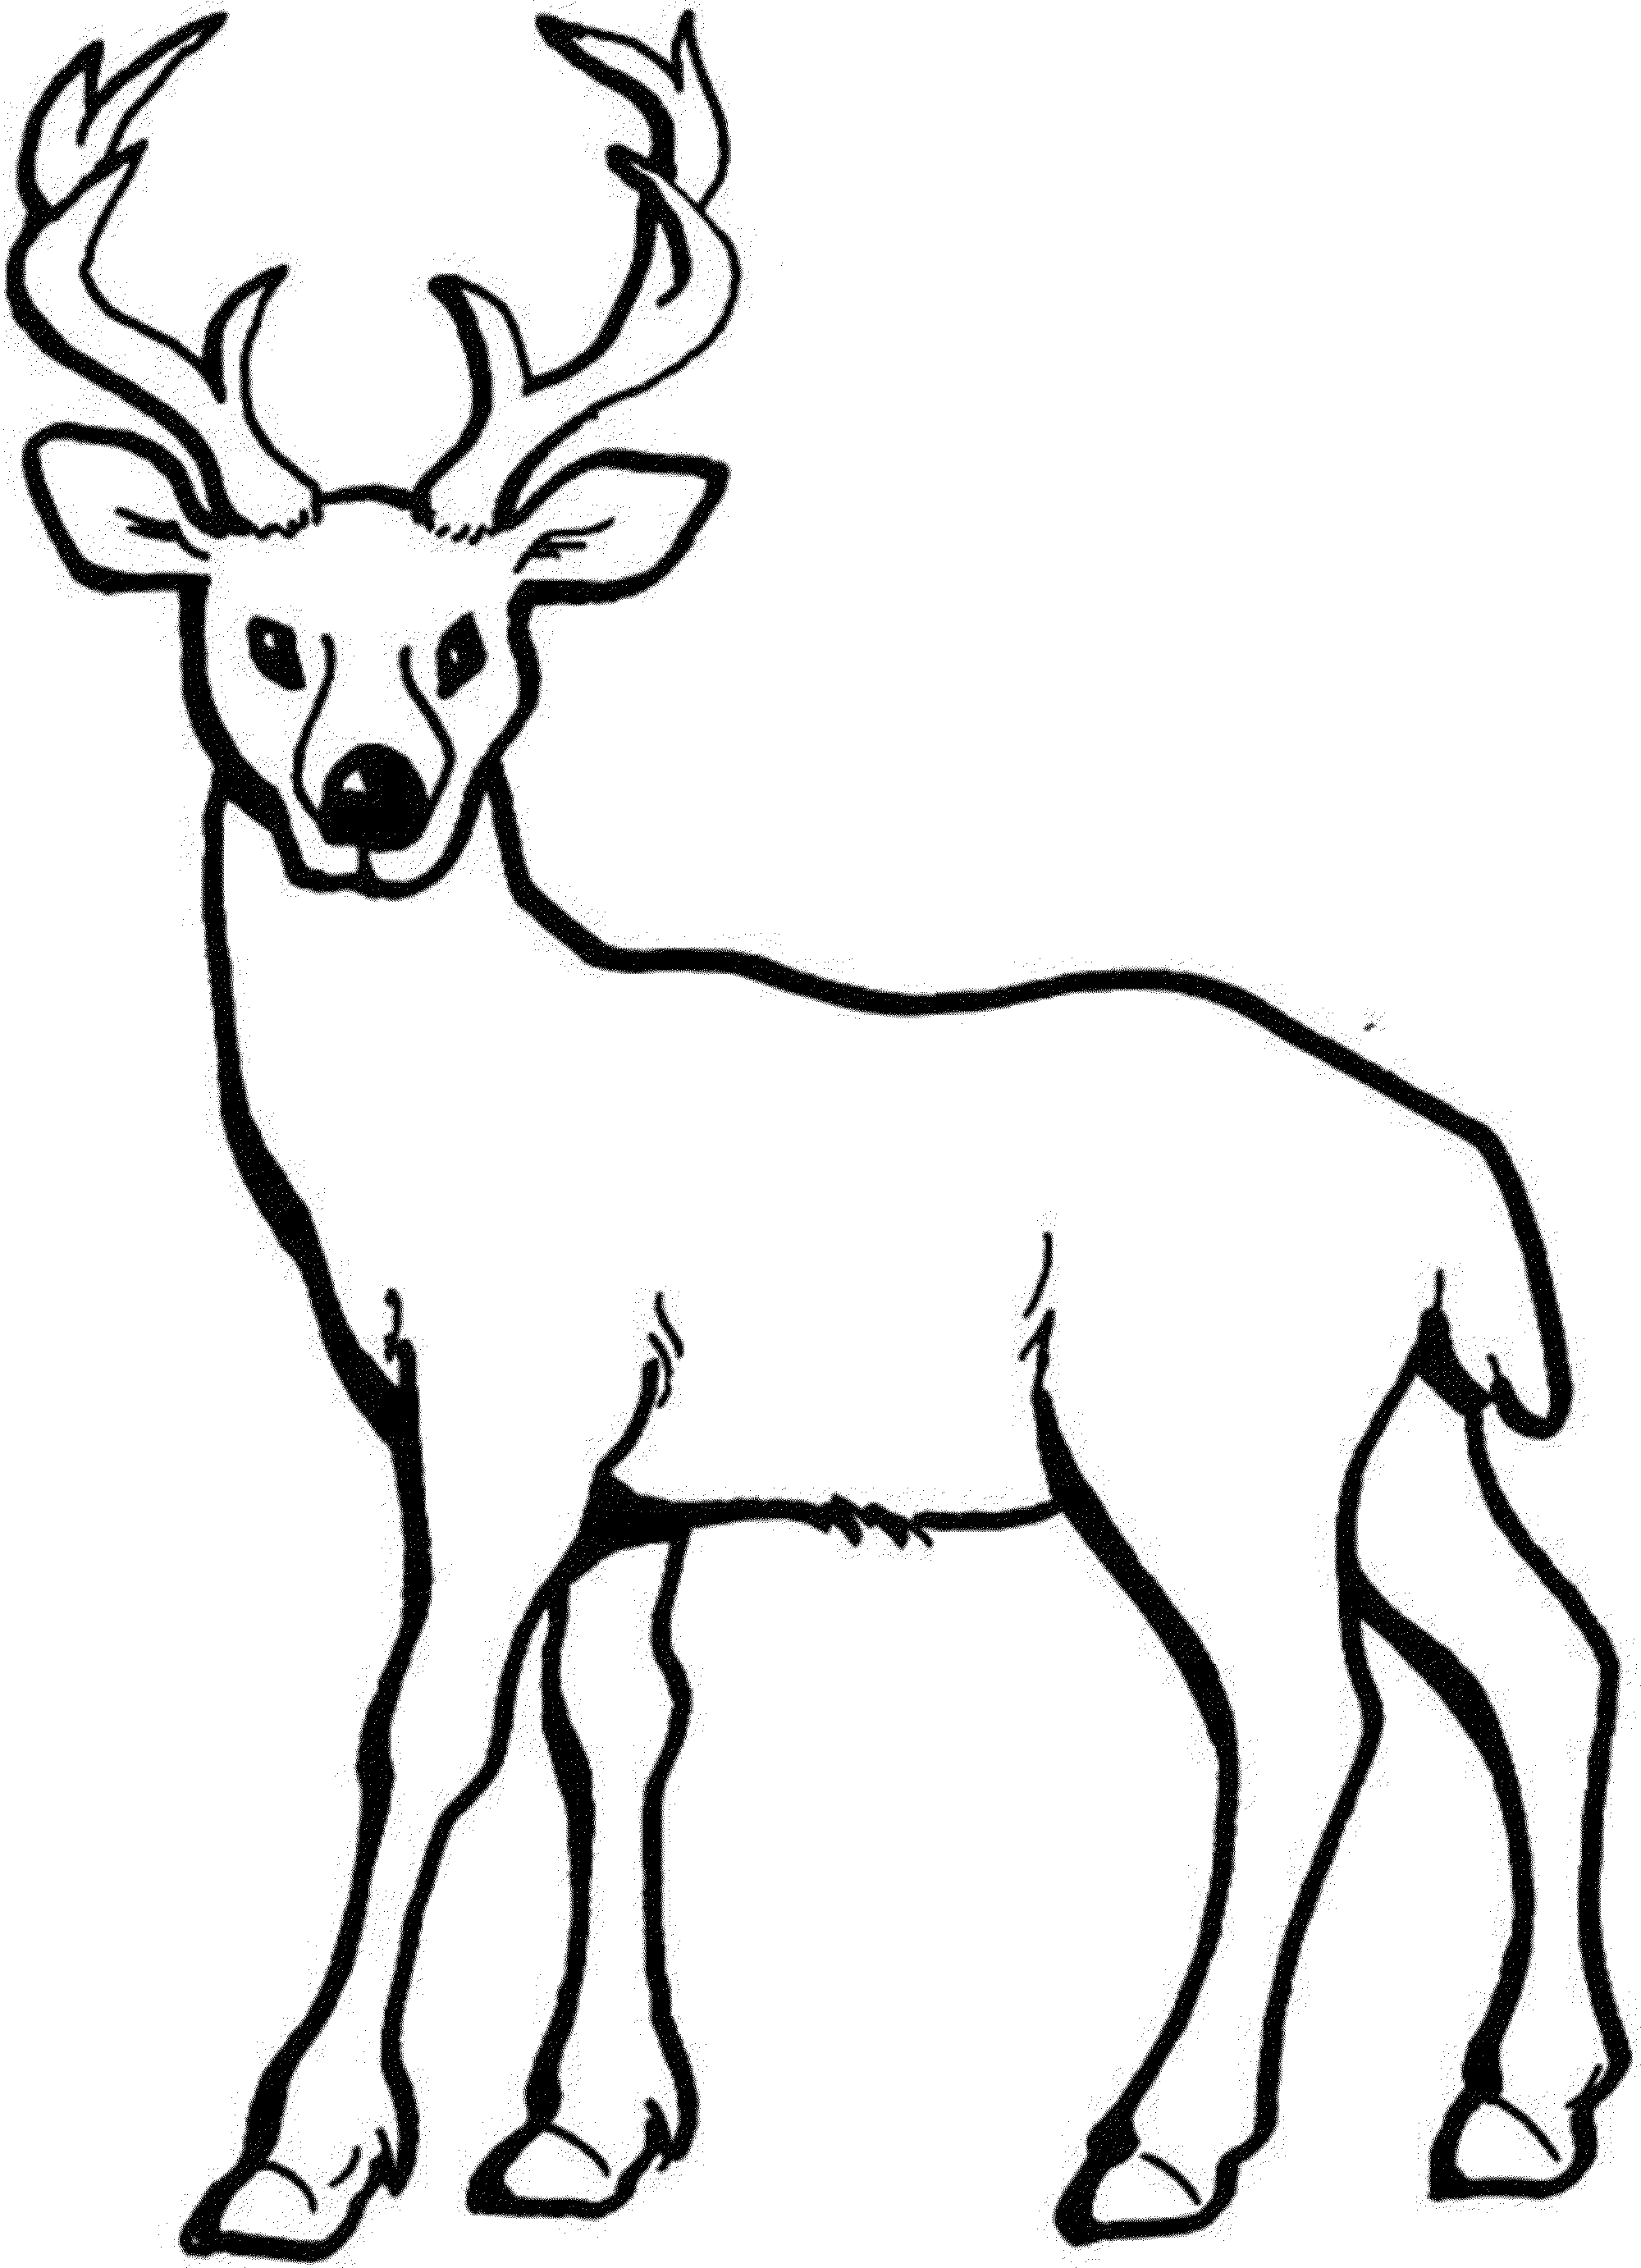 2000x2764 Realistic Deer Coloring Pages